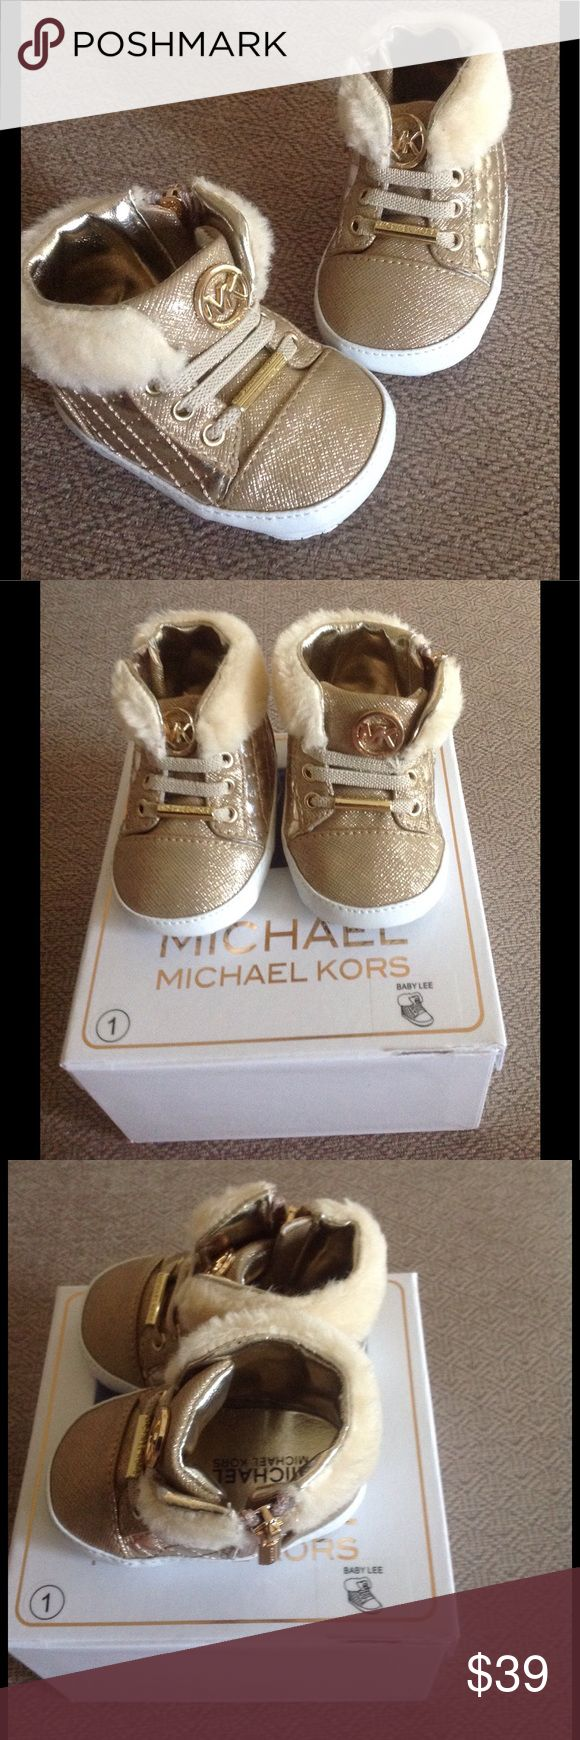 Michael Kors baby shoes. SZ 1 (3wks-6mo). NWOT Adorable MK gold baby shoes in gold. New in box/never worn. There is a tear in the clear plastic on top of box as shown in photo. Great gift! Michael Kors Shoes Sneakers